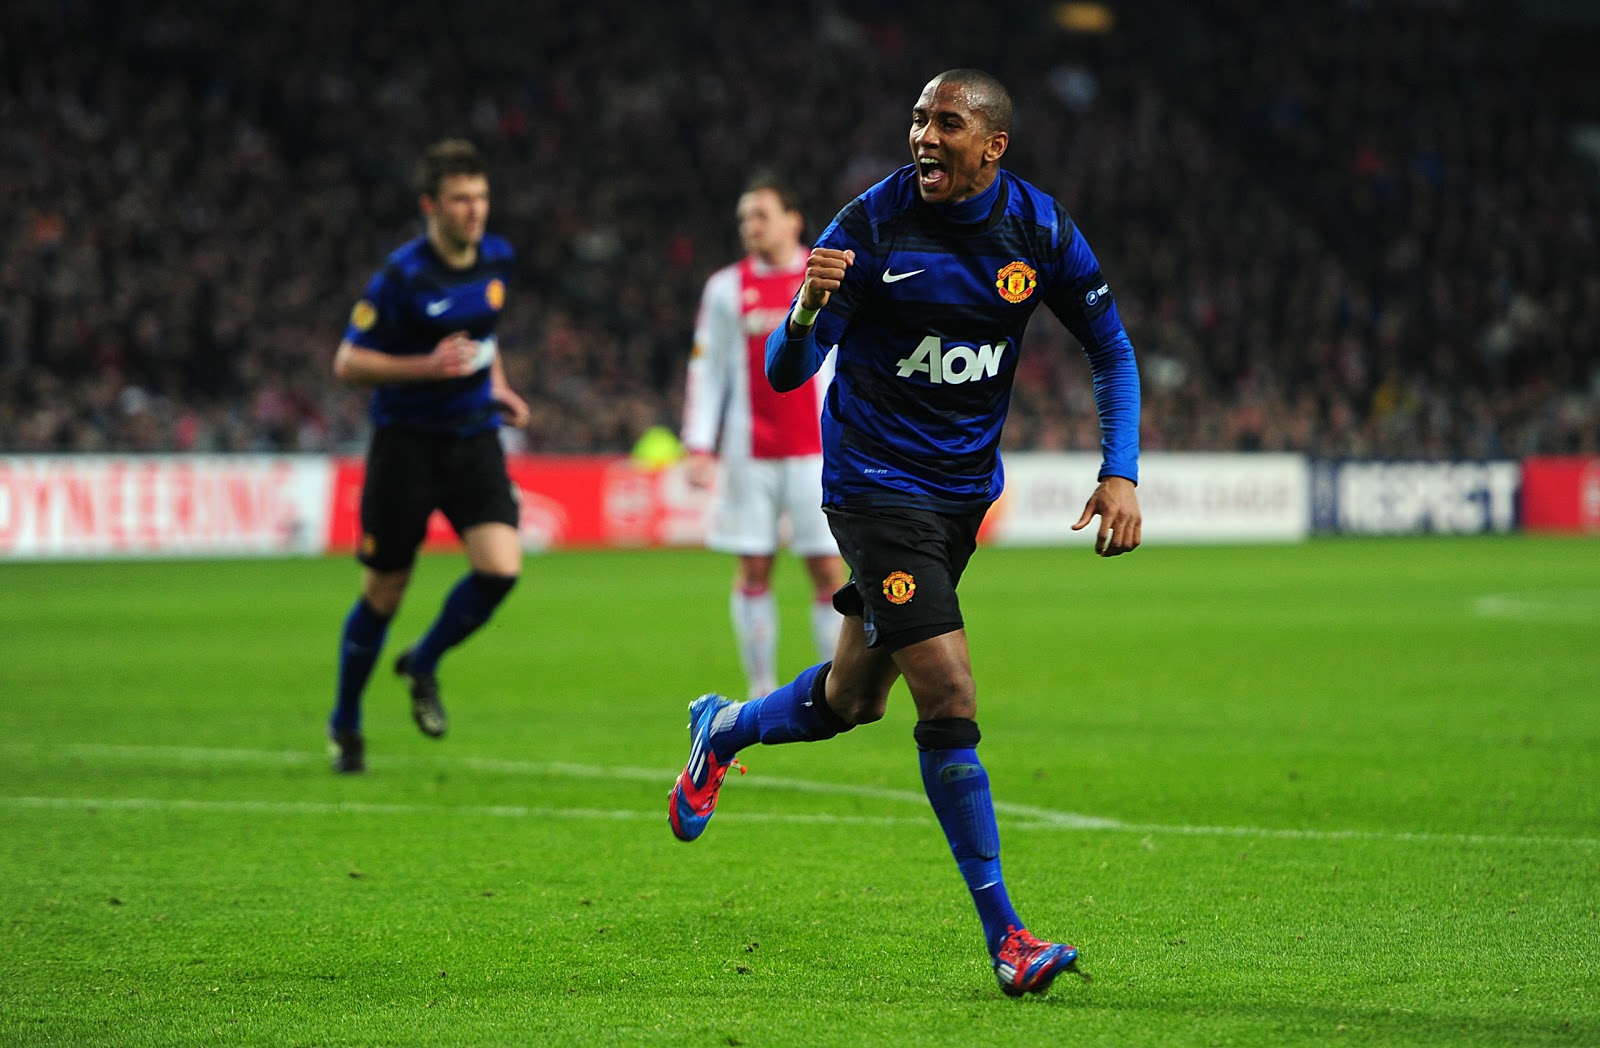 http://2.bp.blogspot.com/-CTCj80m0uCI/T0VjMYRnfMI/AAAAAAAABTI/d4QfCKrl-cY/s1600/Ajax+vs+Manchester+United+europa+league+Ashley+Young+celebrates+goal.jpg